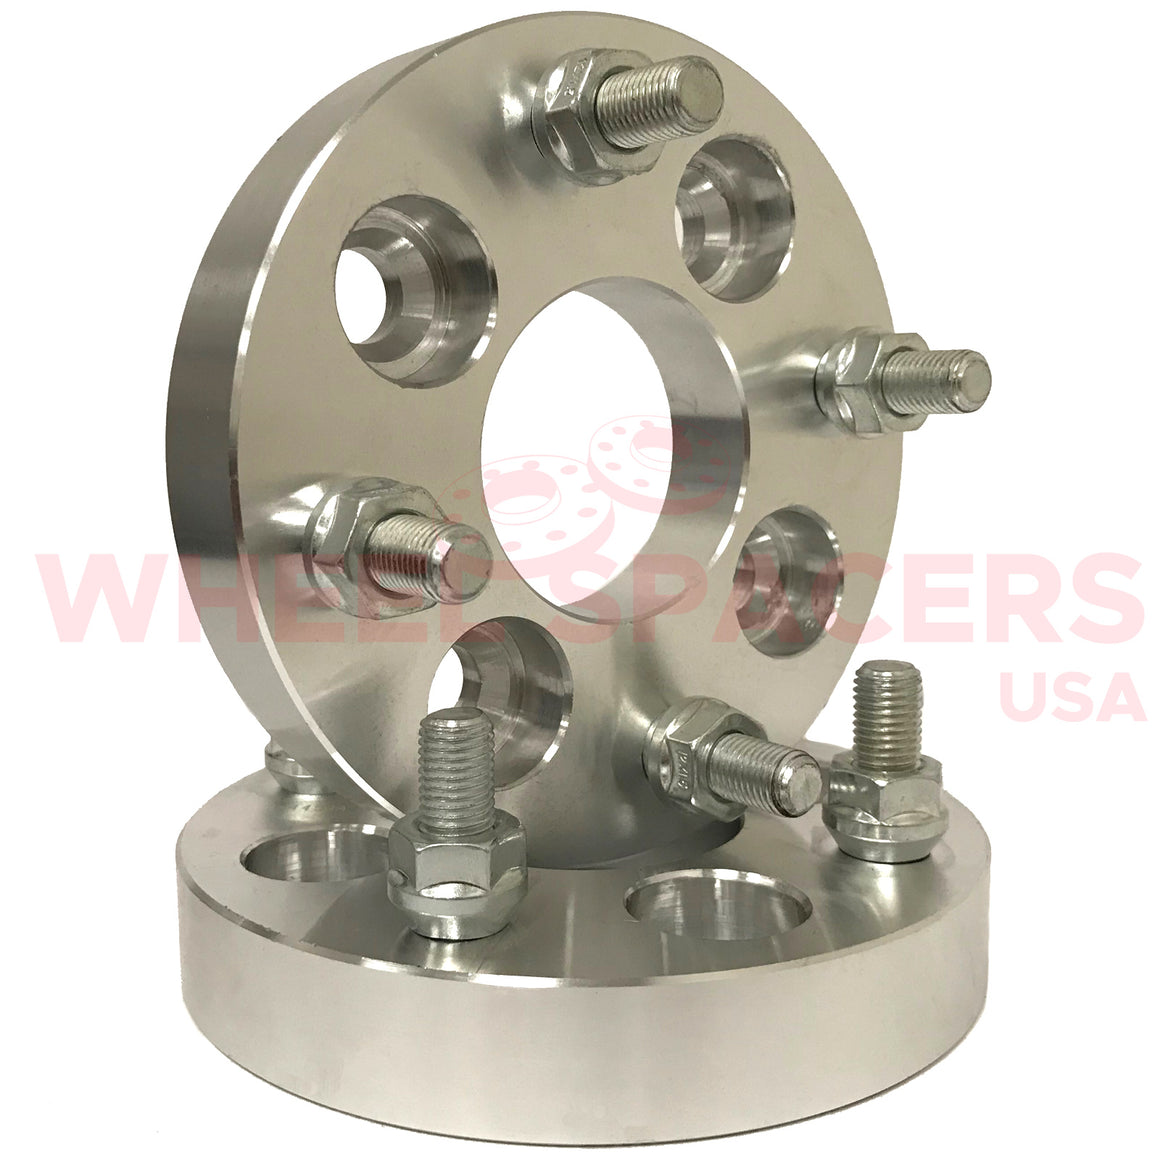 4x4.5 Kia Wheel Spacers With 12x1.5 Studs For Kia Optima Spectra Image 4x114.3